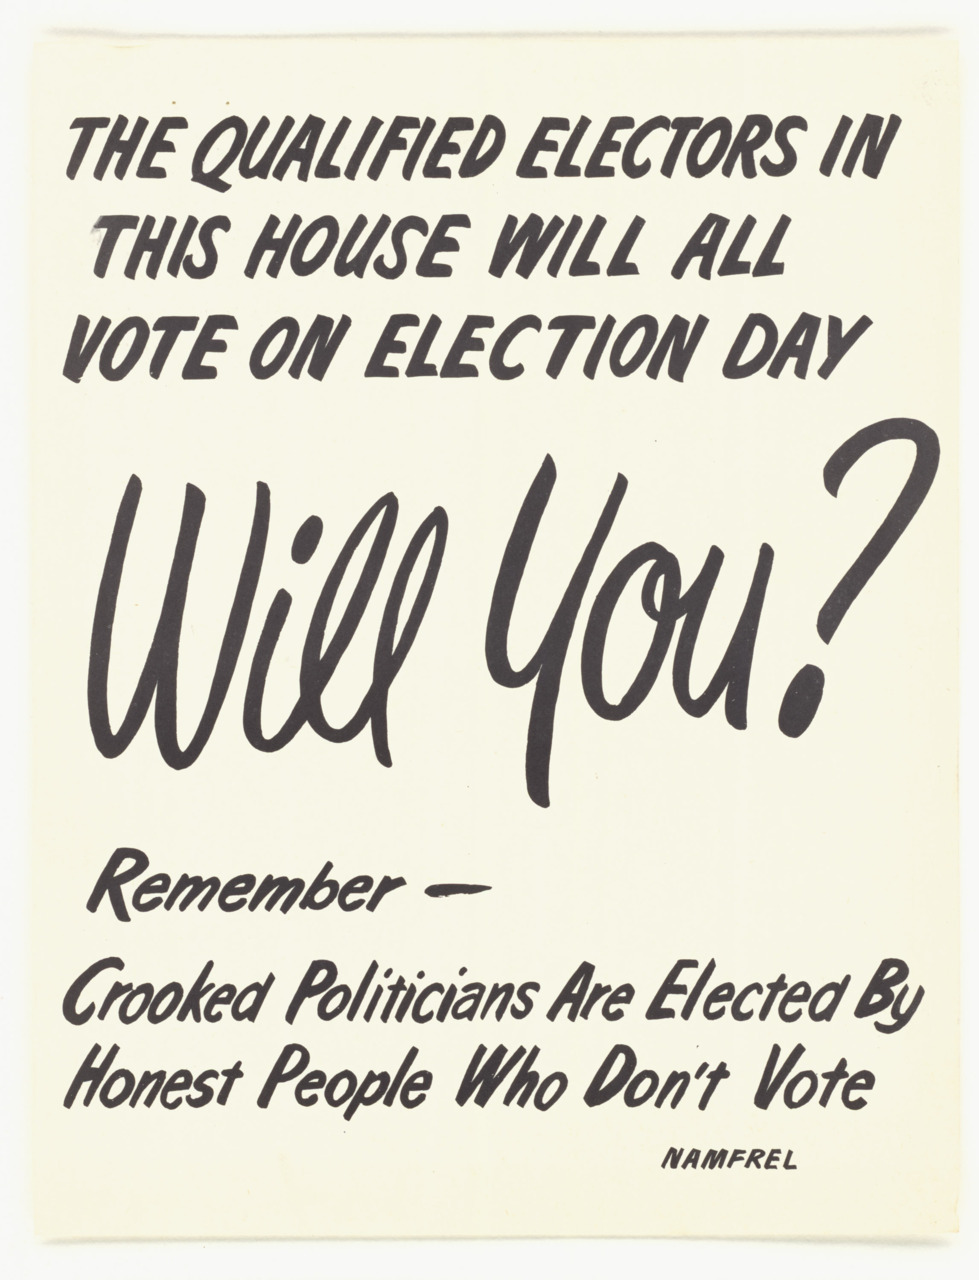 coolchicksfromhistory:  National Citizens' Movement for Free Elections (Philippines) poster from the 1950s via the US National Archives.